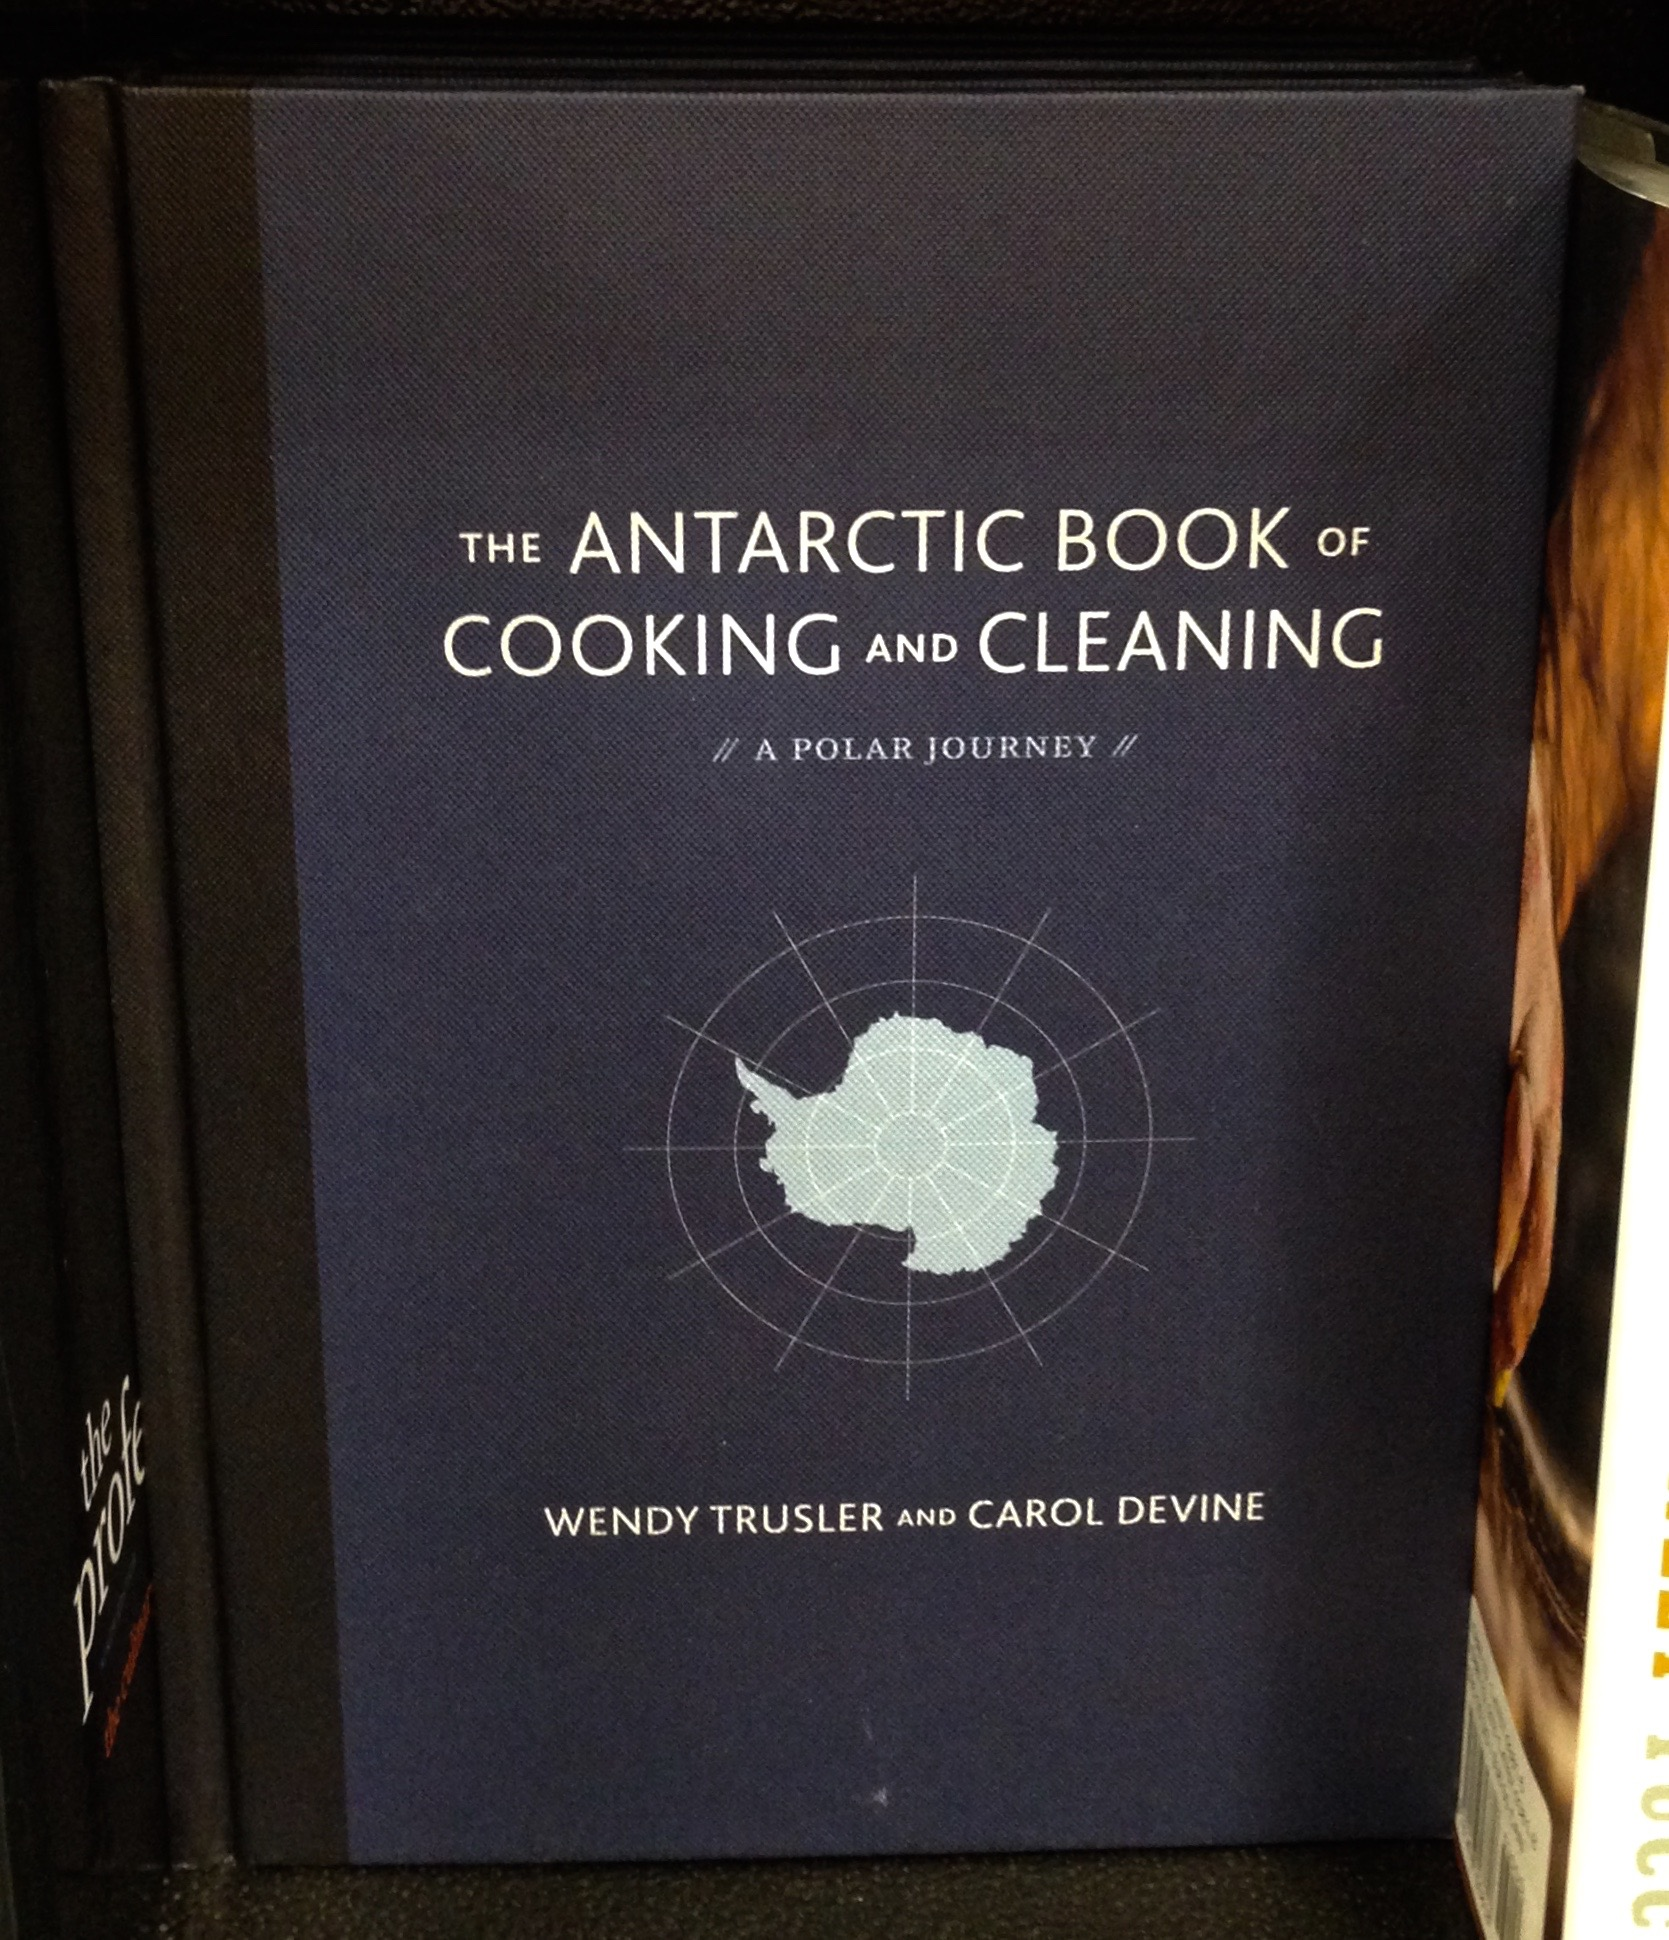 The Antarctic Book of Cooking and Cleaning: A Polar Journey